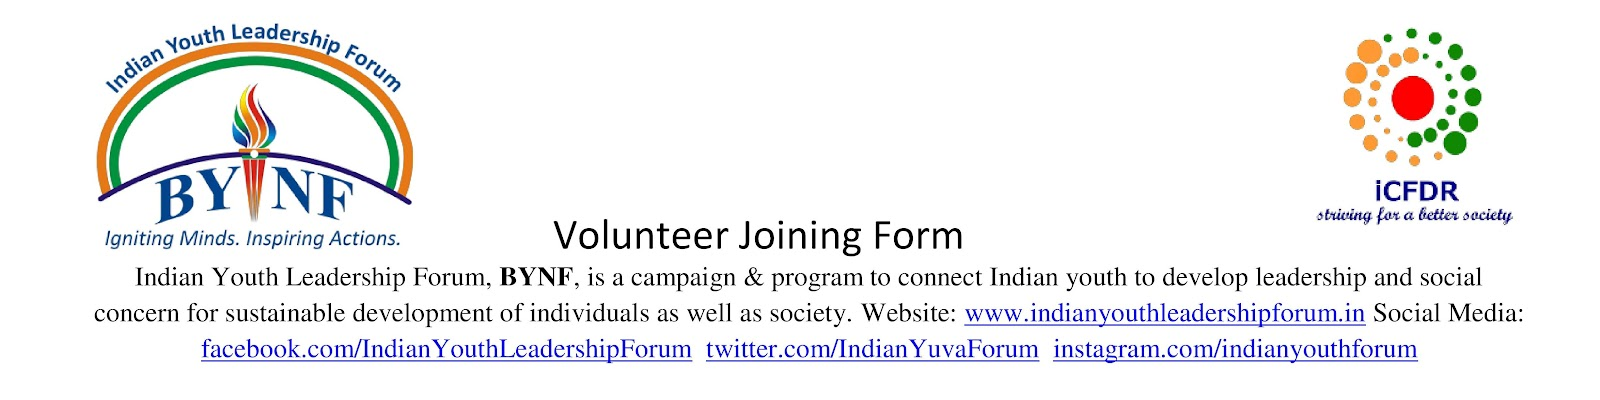 BYNF-icfdr-ngo-joining-form